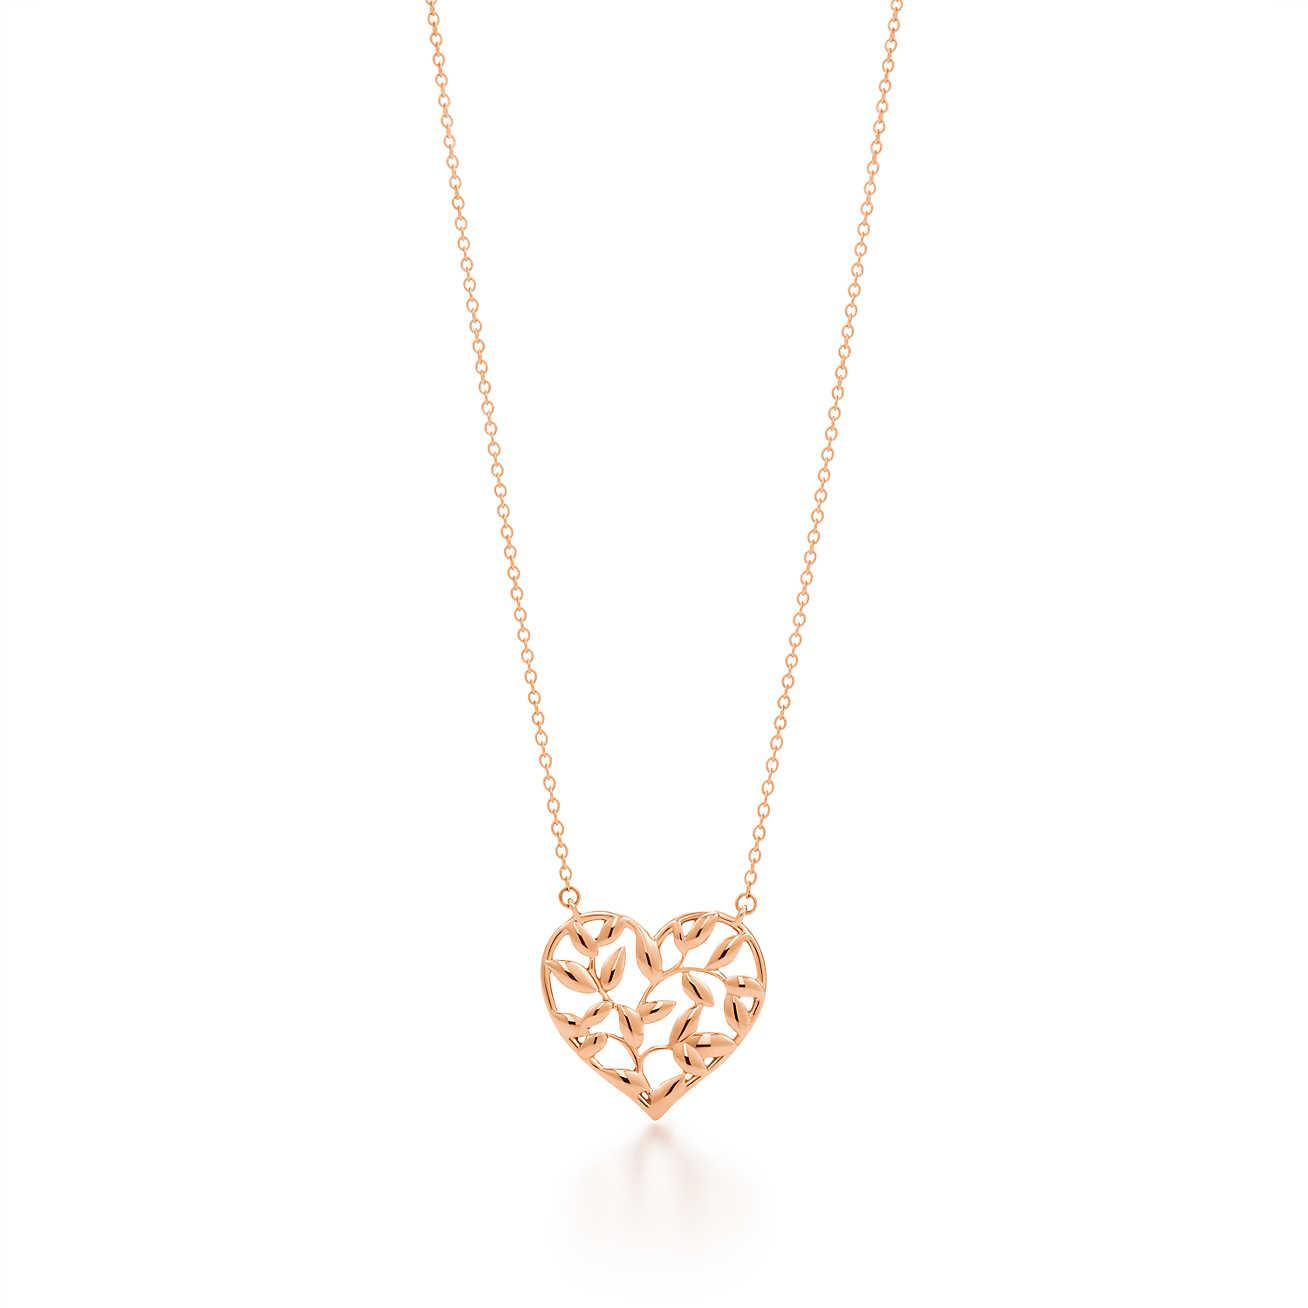 3fd82021f Tiffany & Co. Paloma Picasso. Olive Leaf Heart Pendant In 18k Rose ...